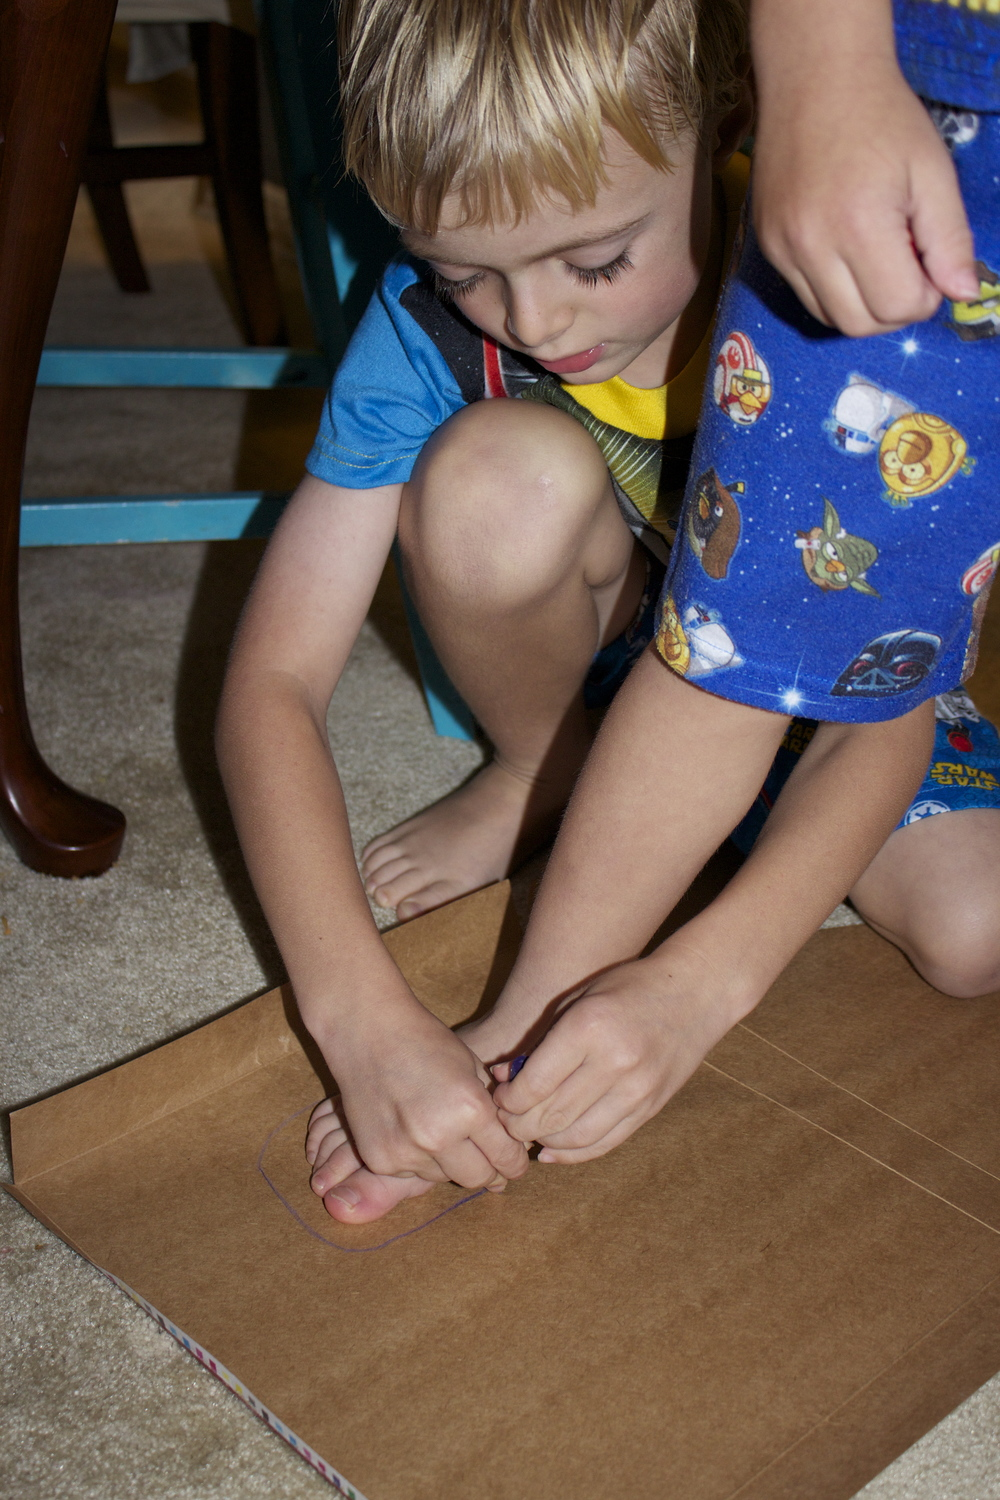 Tracing feet on cardboard.